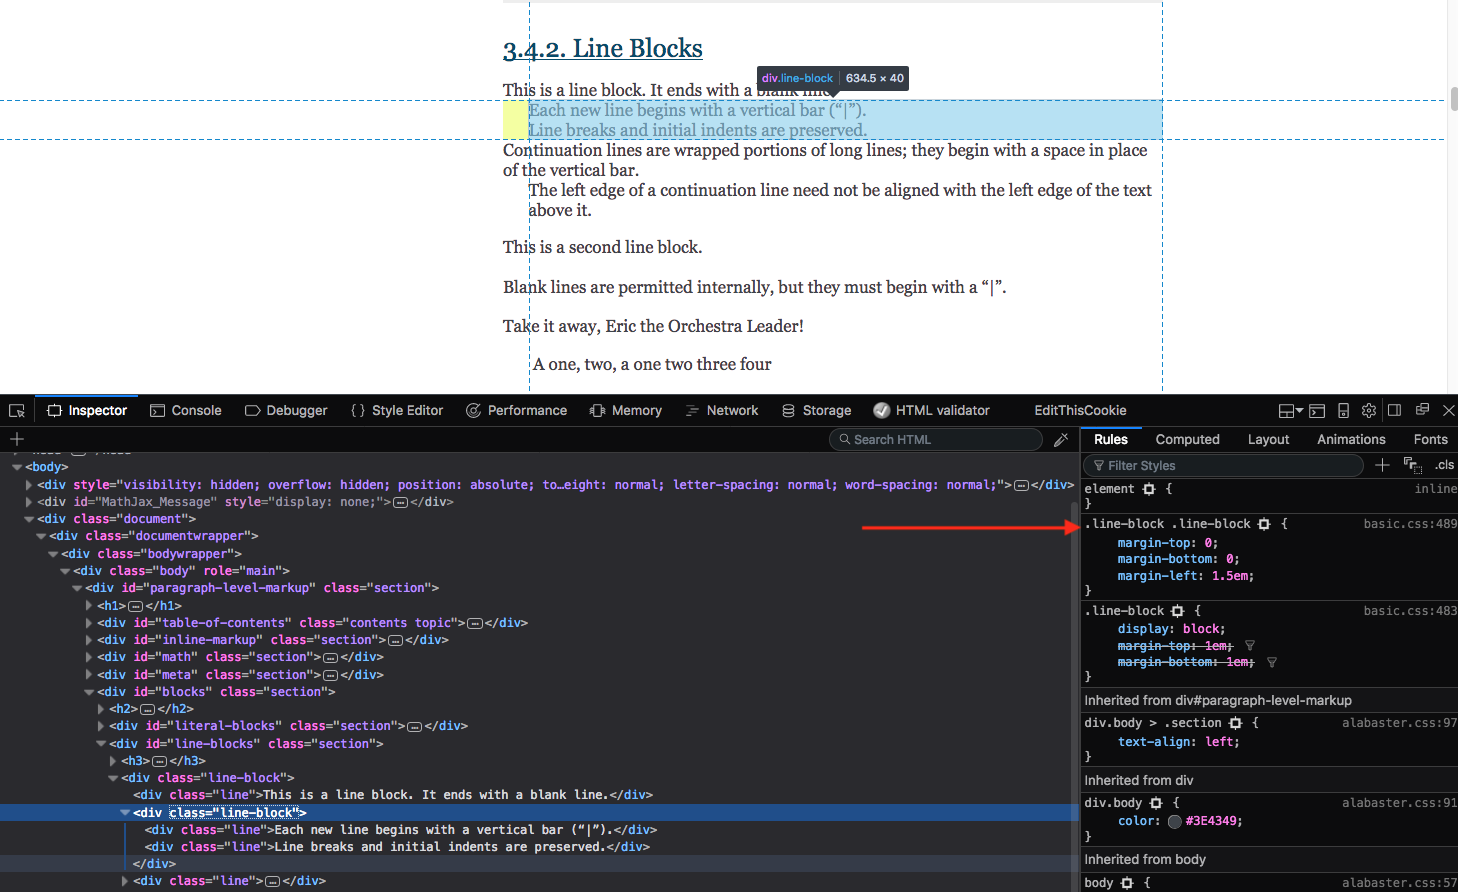 Line breaks causing indented text when using the theme · Issue #273